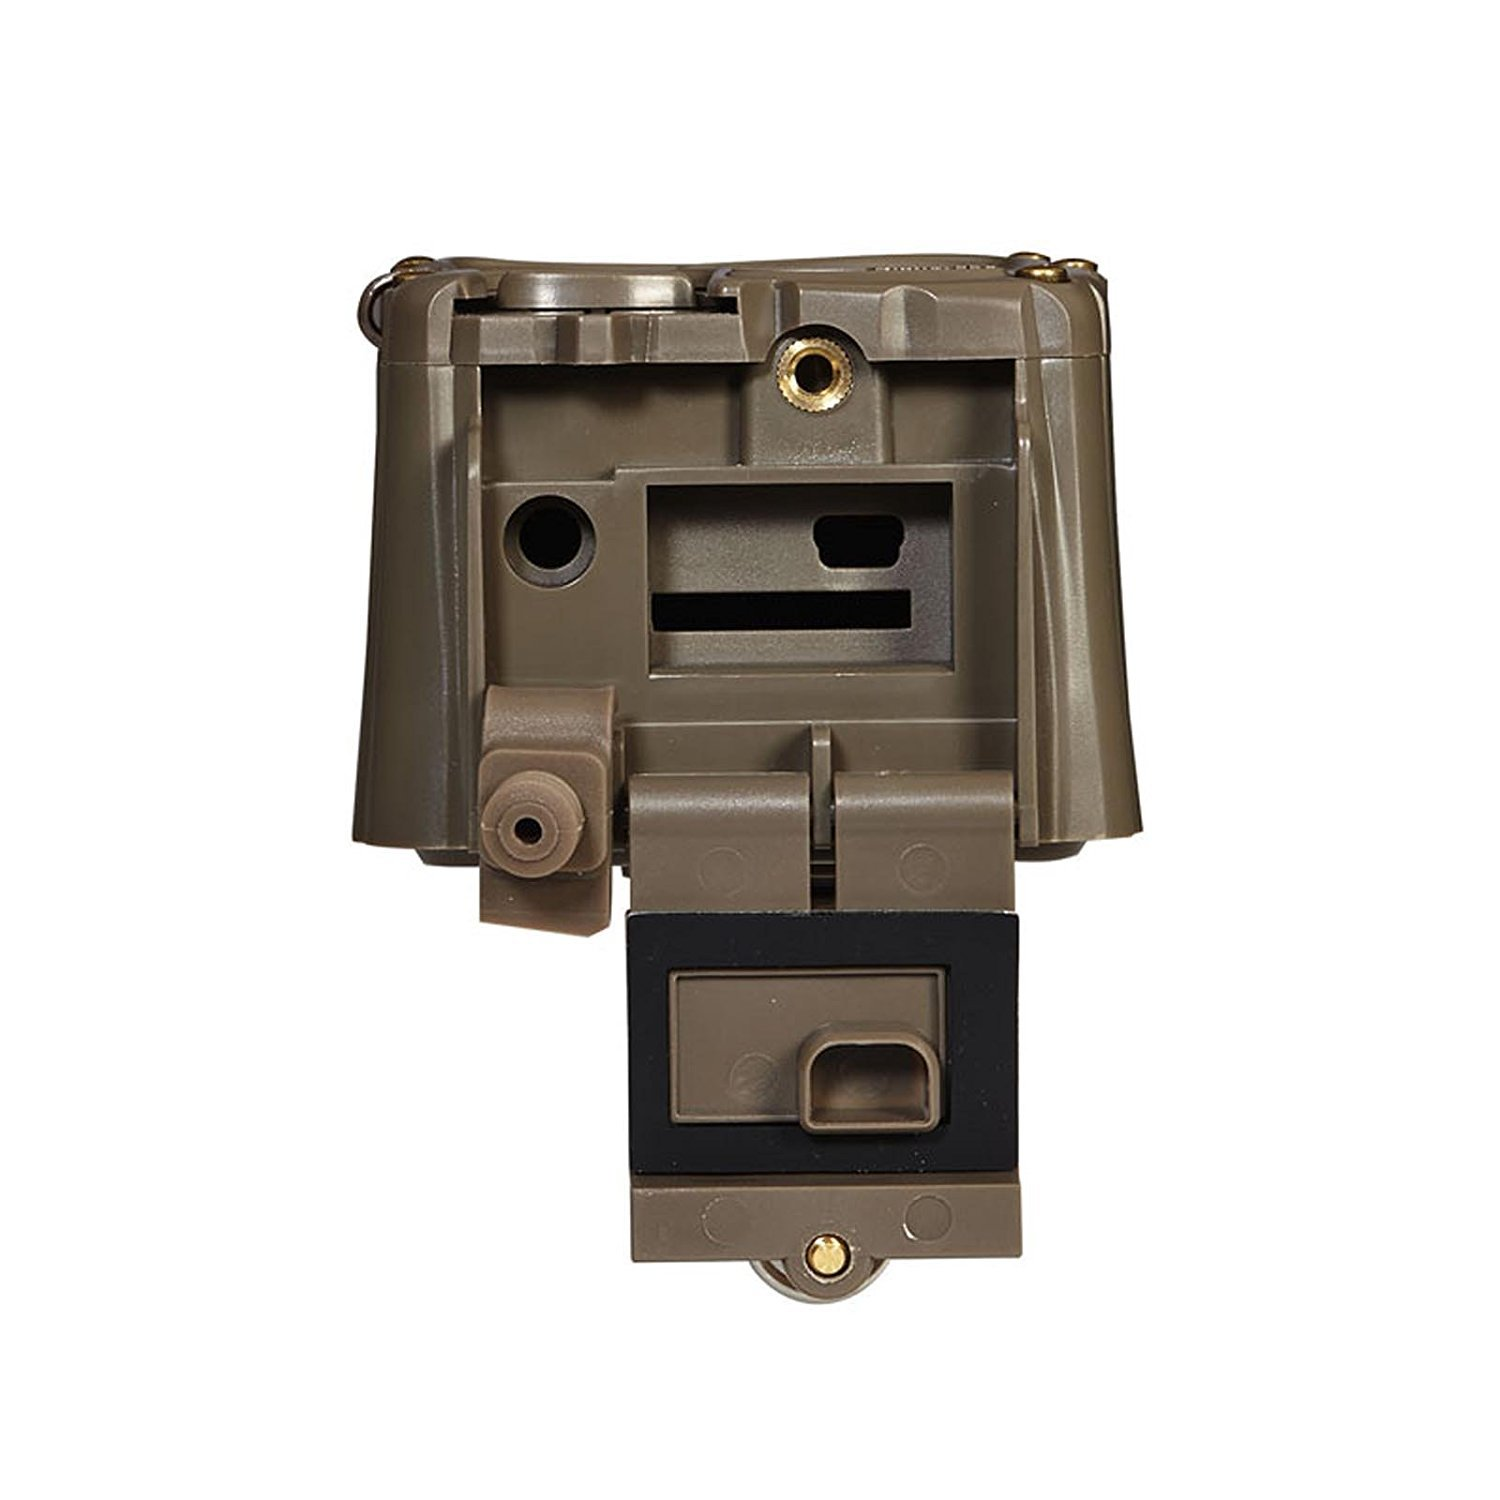 Cuddeback 20MP Black Flash No Glow Infrared Trail Game Hunting Camera with Mounting Bracket and Strap by Cuddeback (Image #4)